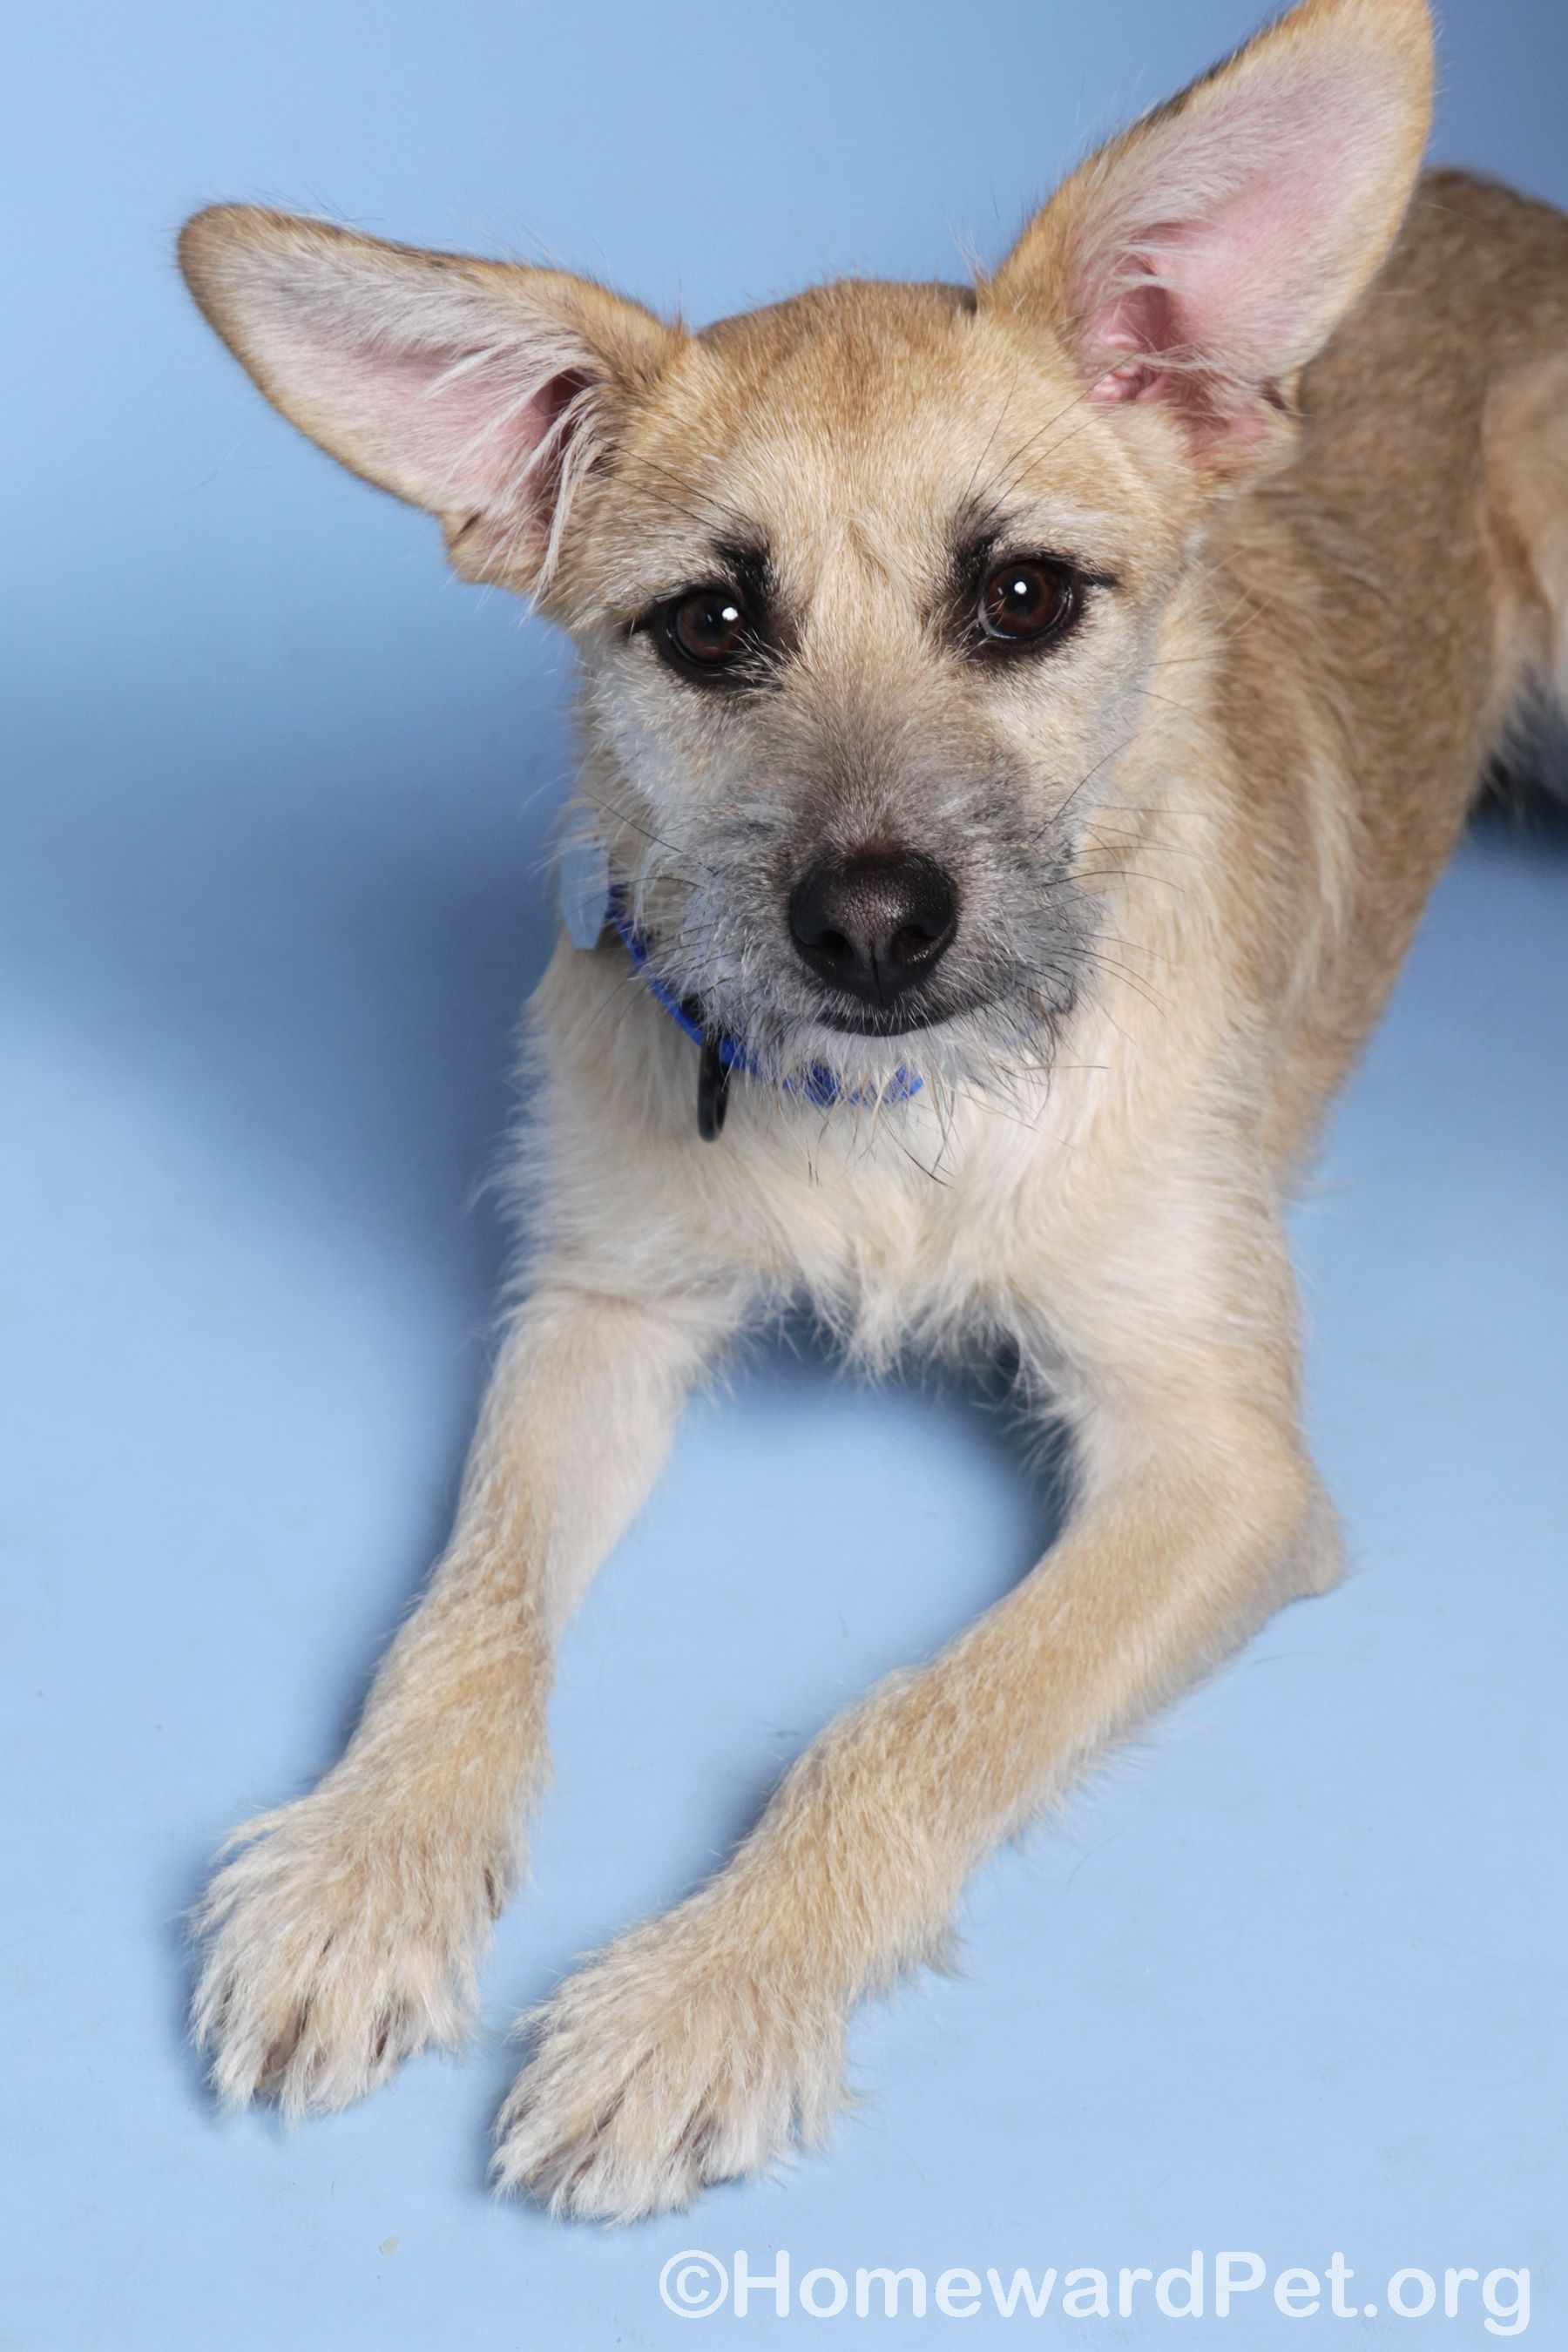 Caitlyn is a playful girl is a seven month old terrier mix